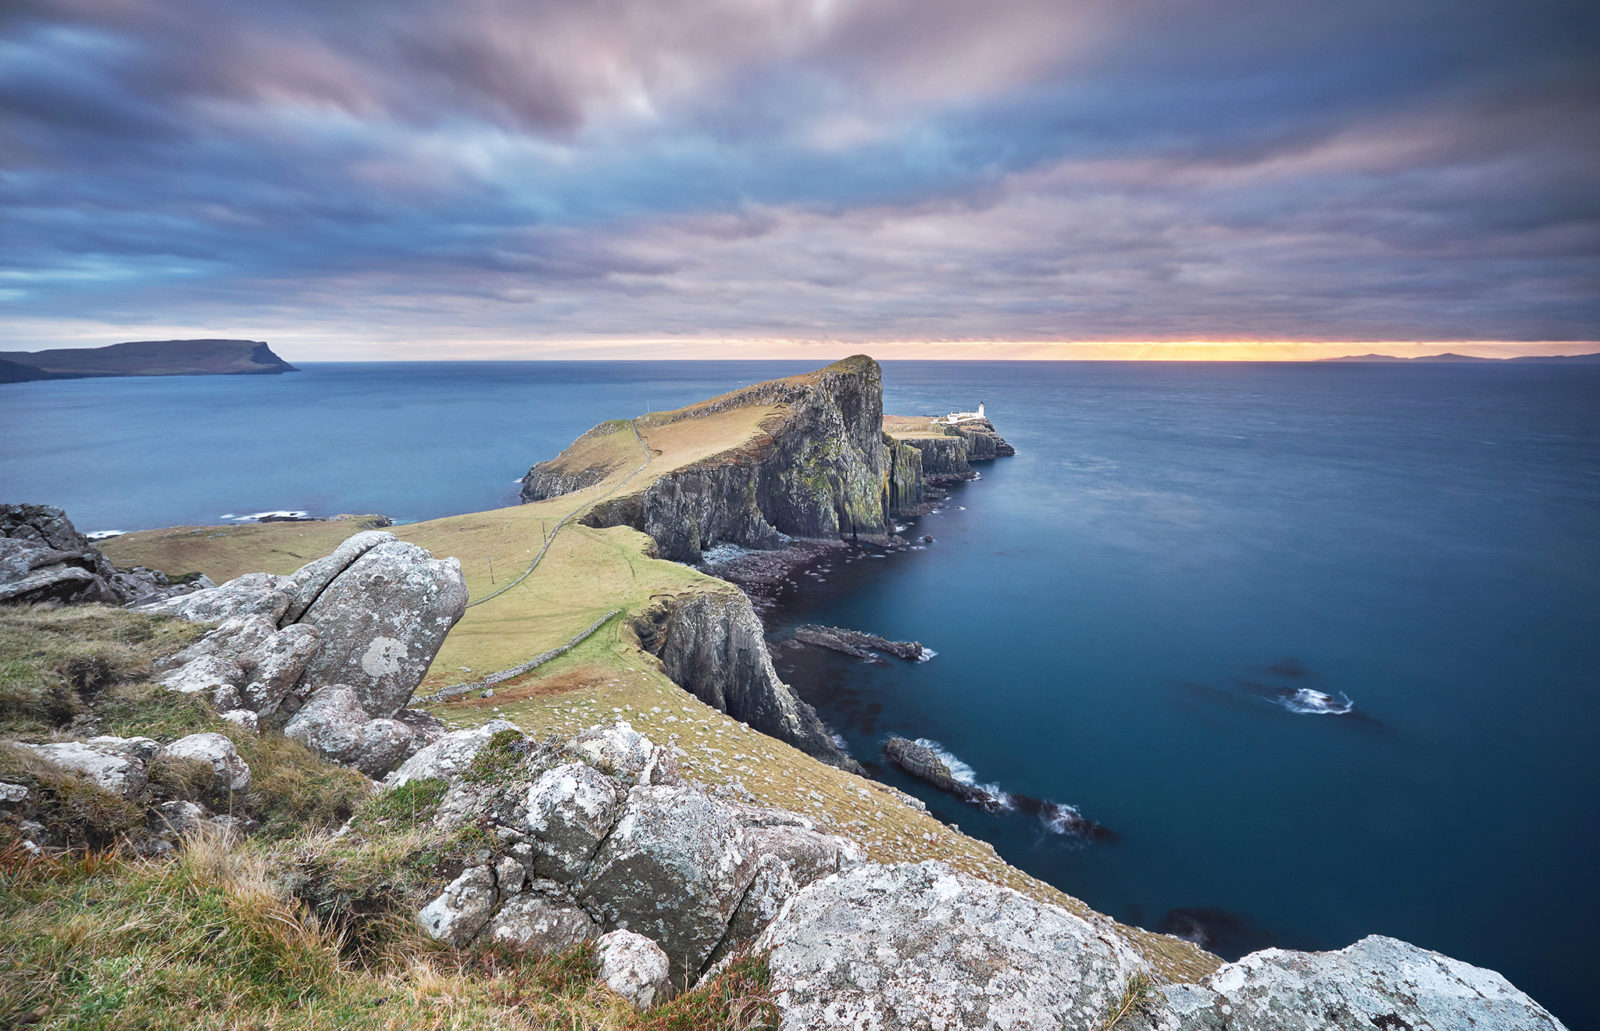 Cloudy sunset over the Neist Point lighthouse